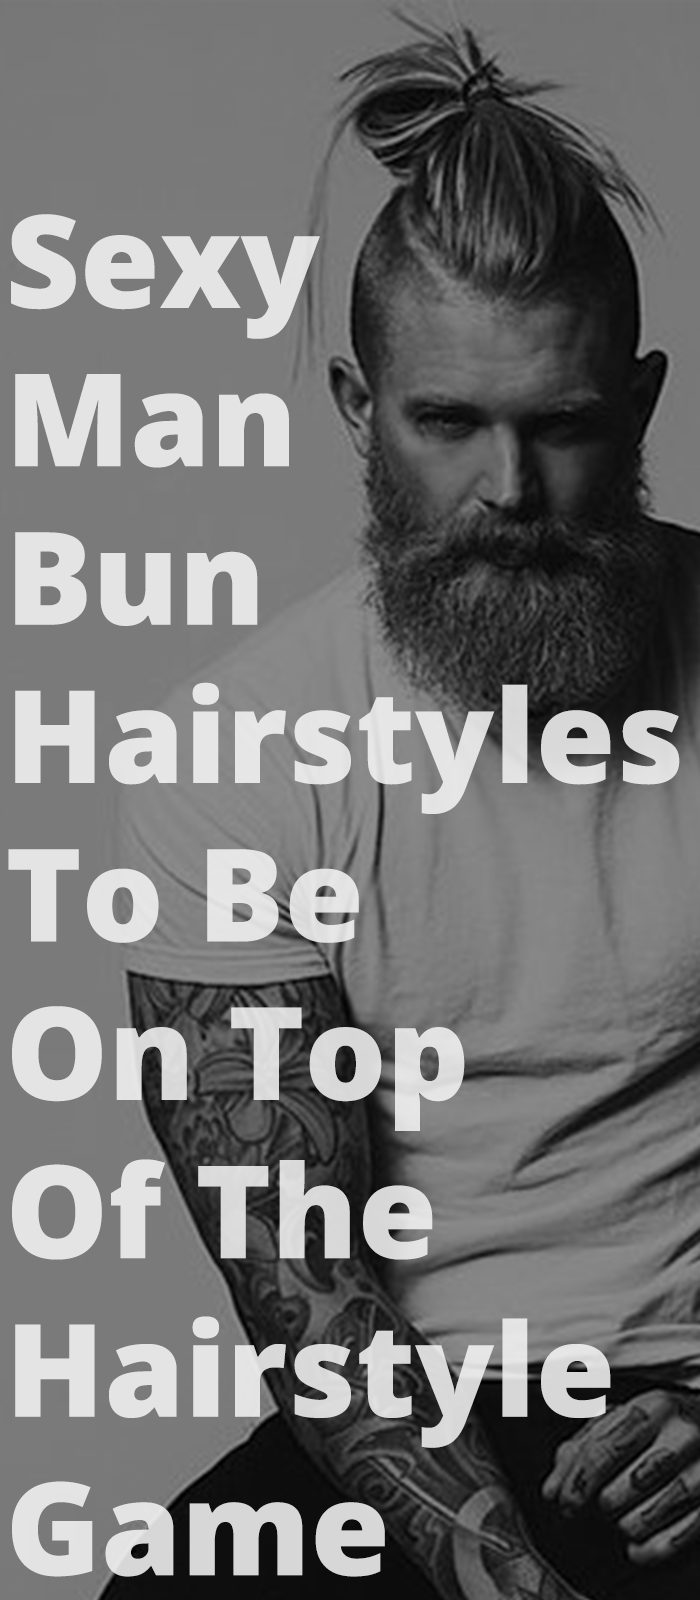 Man Bun Hairstyles To Be On Top Of The Hairstyle Game